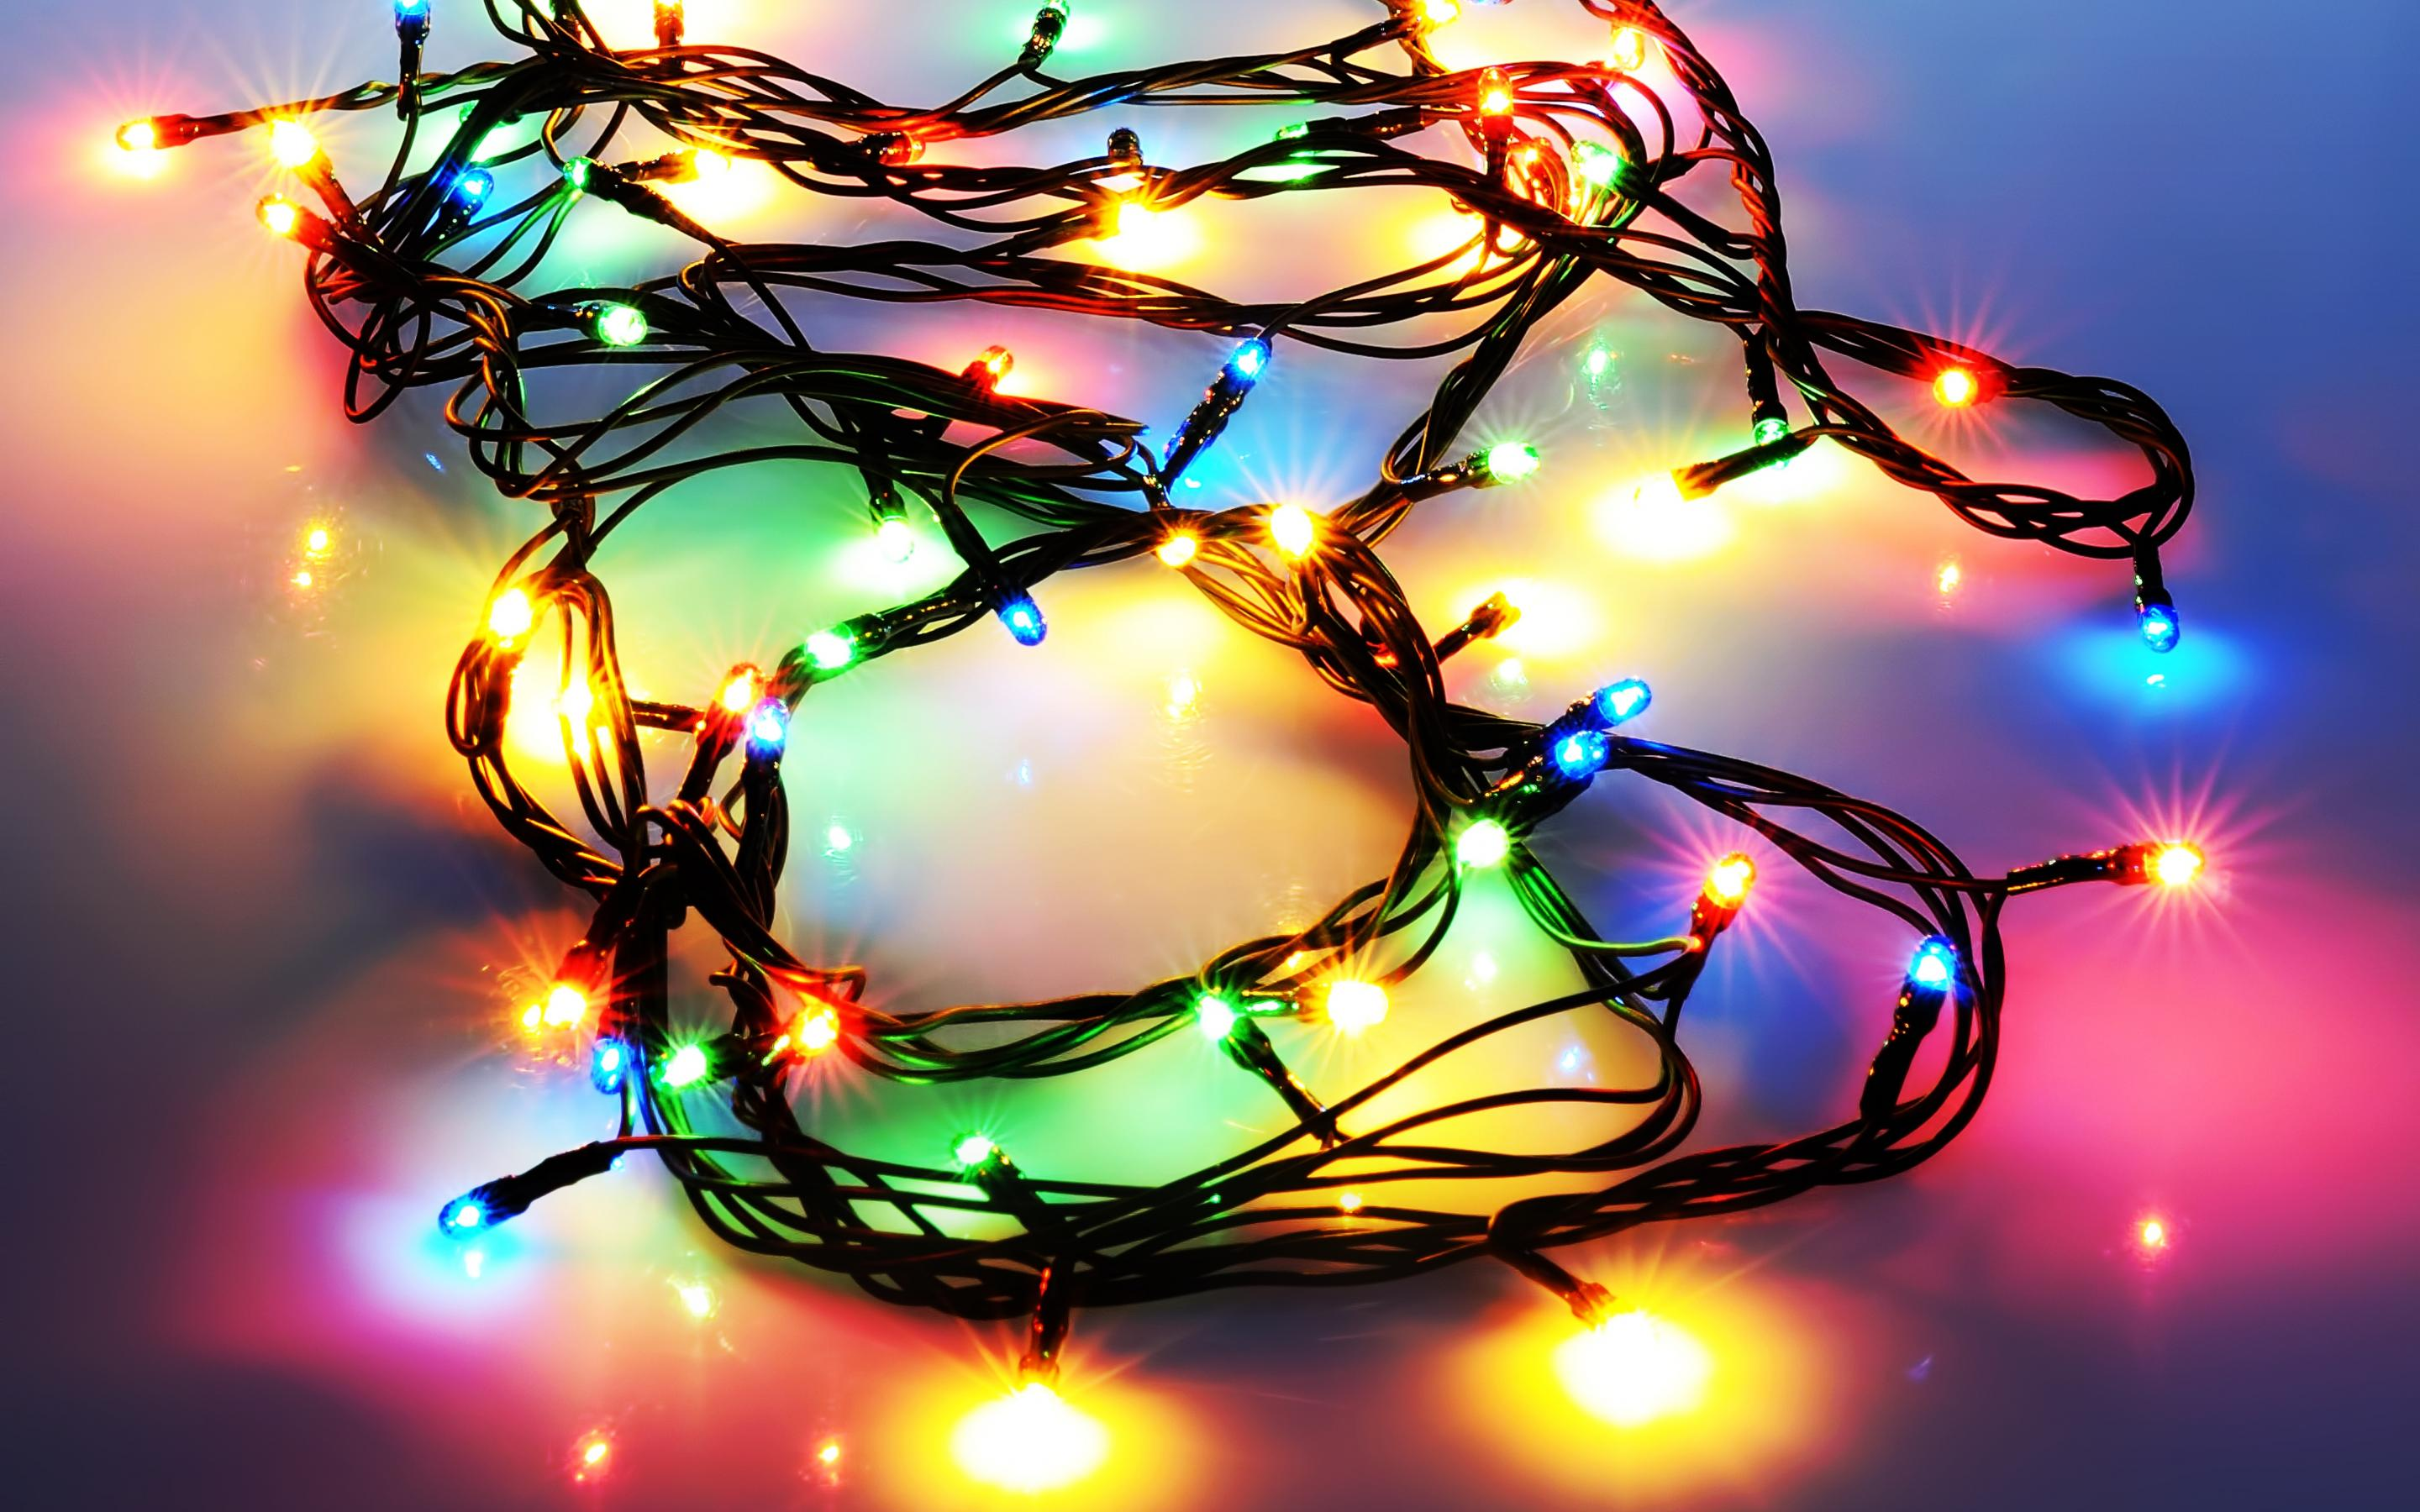 christmas full hd wallpaper and background image | 2880x1800 | id:461867